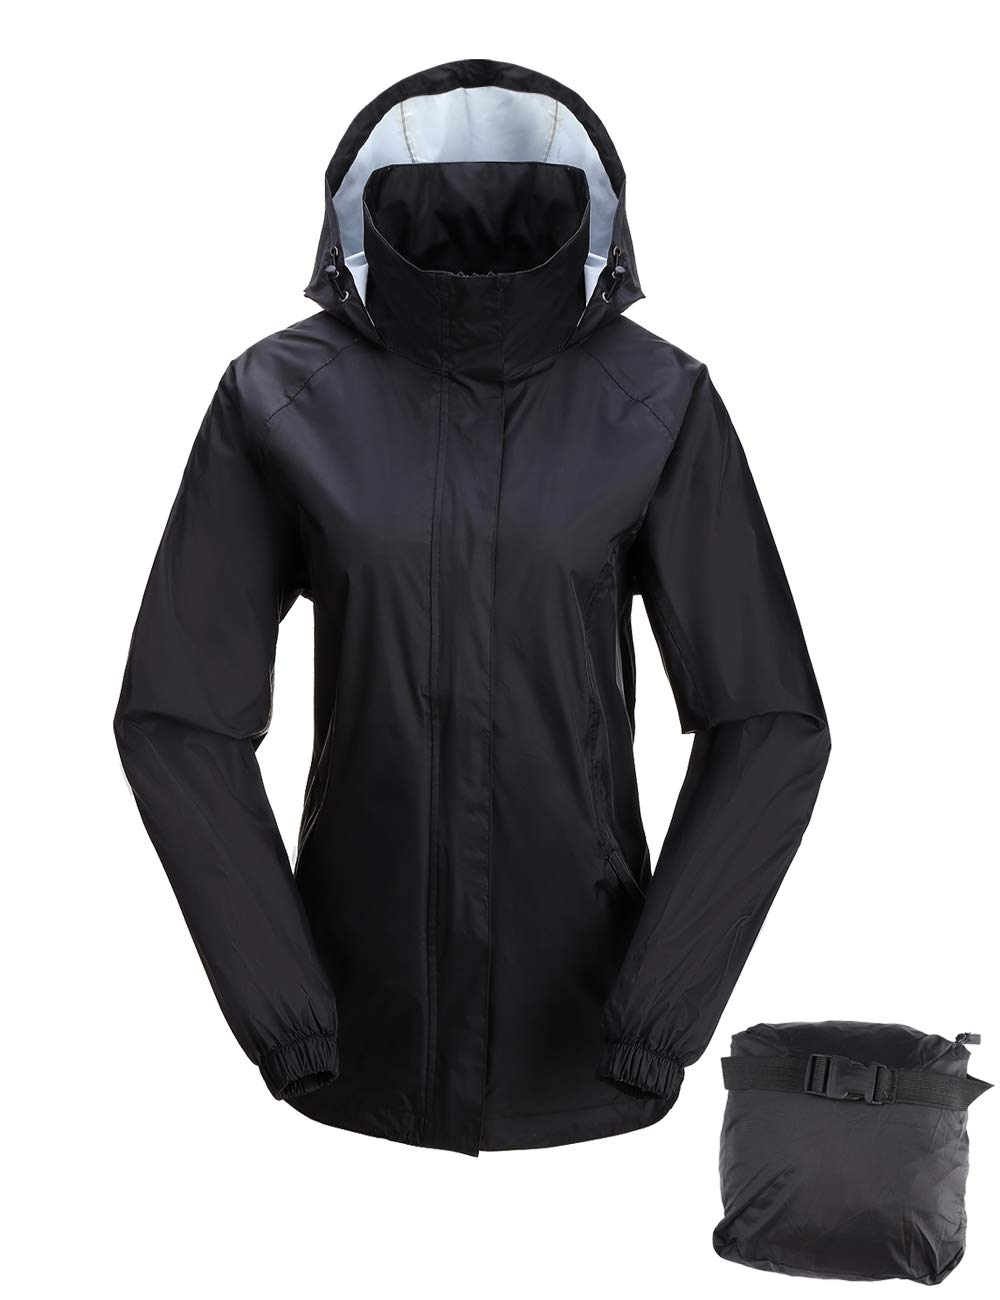 Great light weight rain jacket for travel